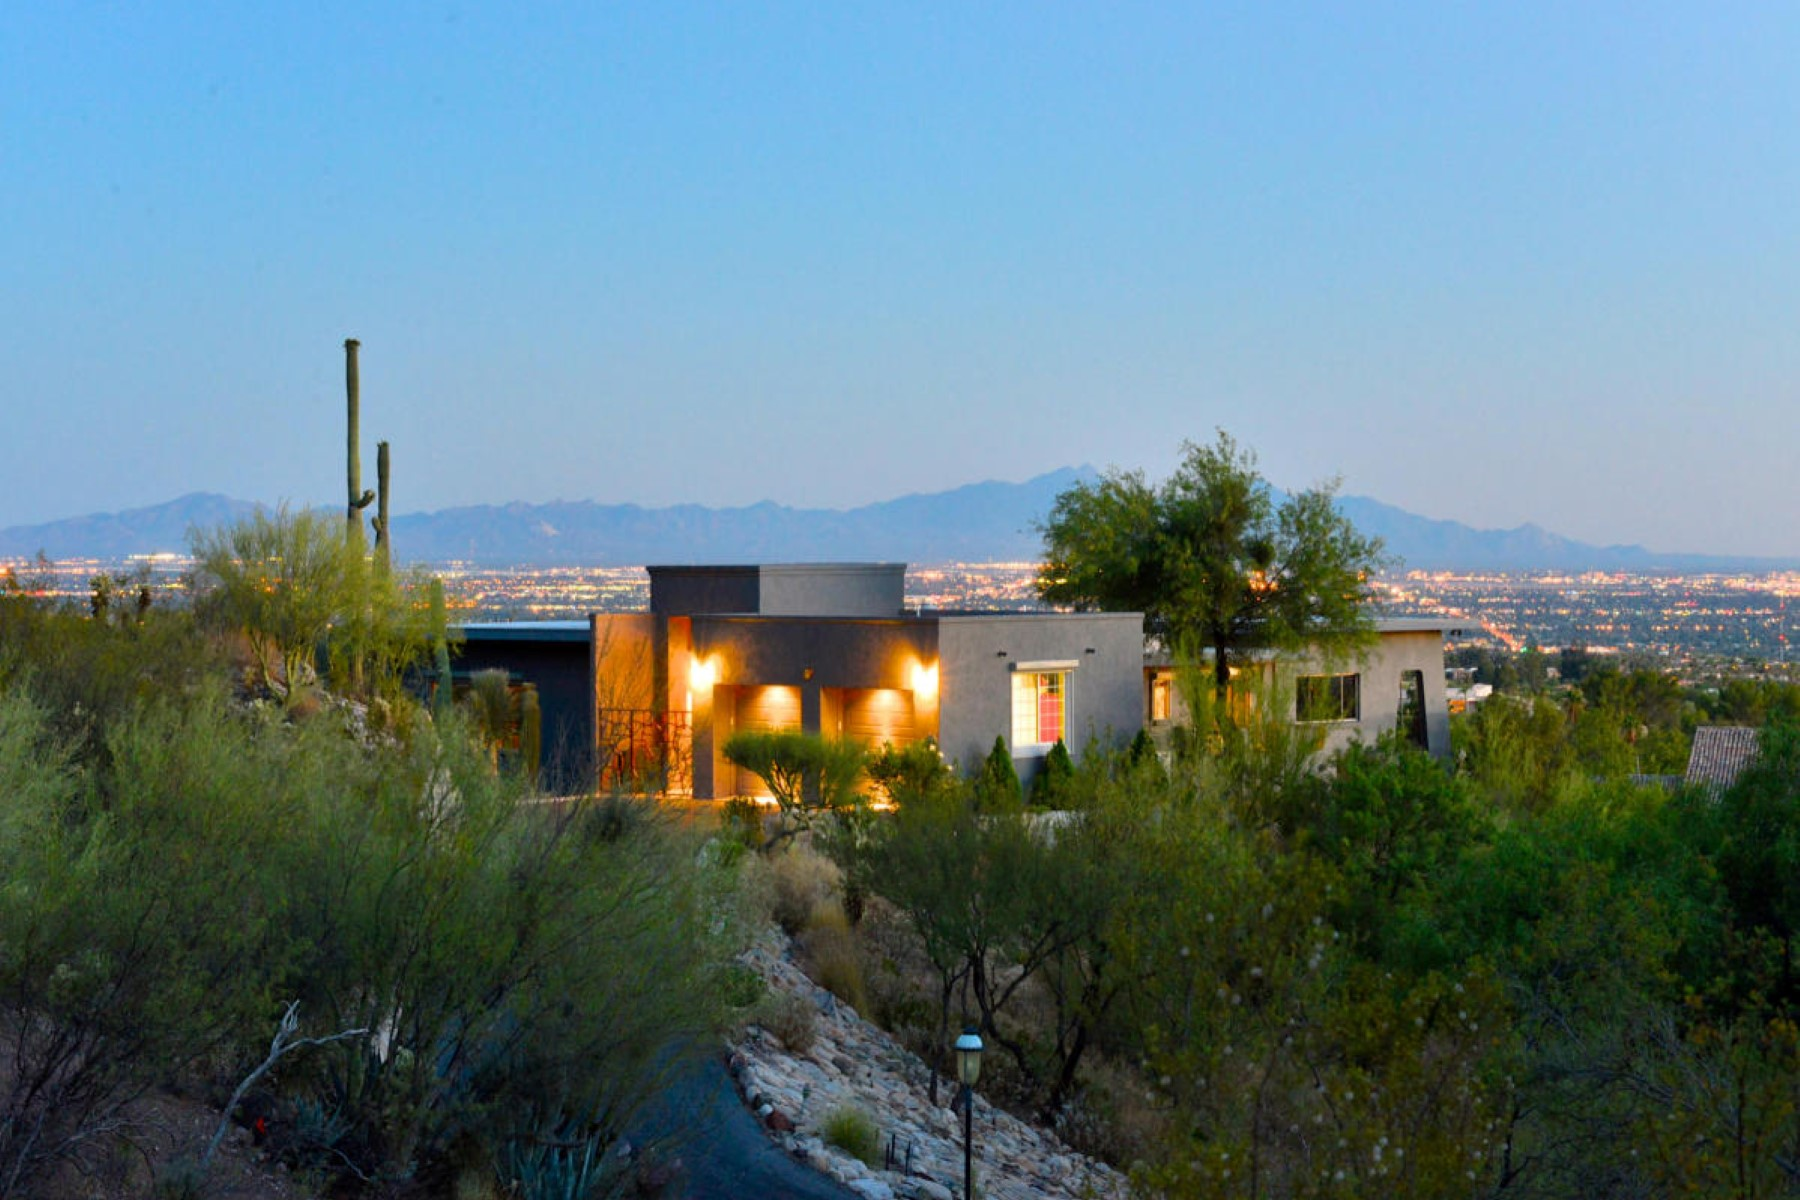 Casa Unifamiliar por un Venta en Extraordinary modern contemporary home with spectacular city views. 4940 E Winged Foot Drive Tucson, Arizona, 85718 Estados Unidos